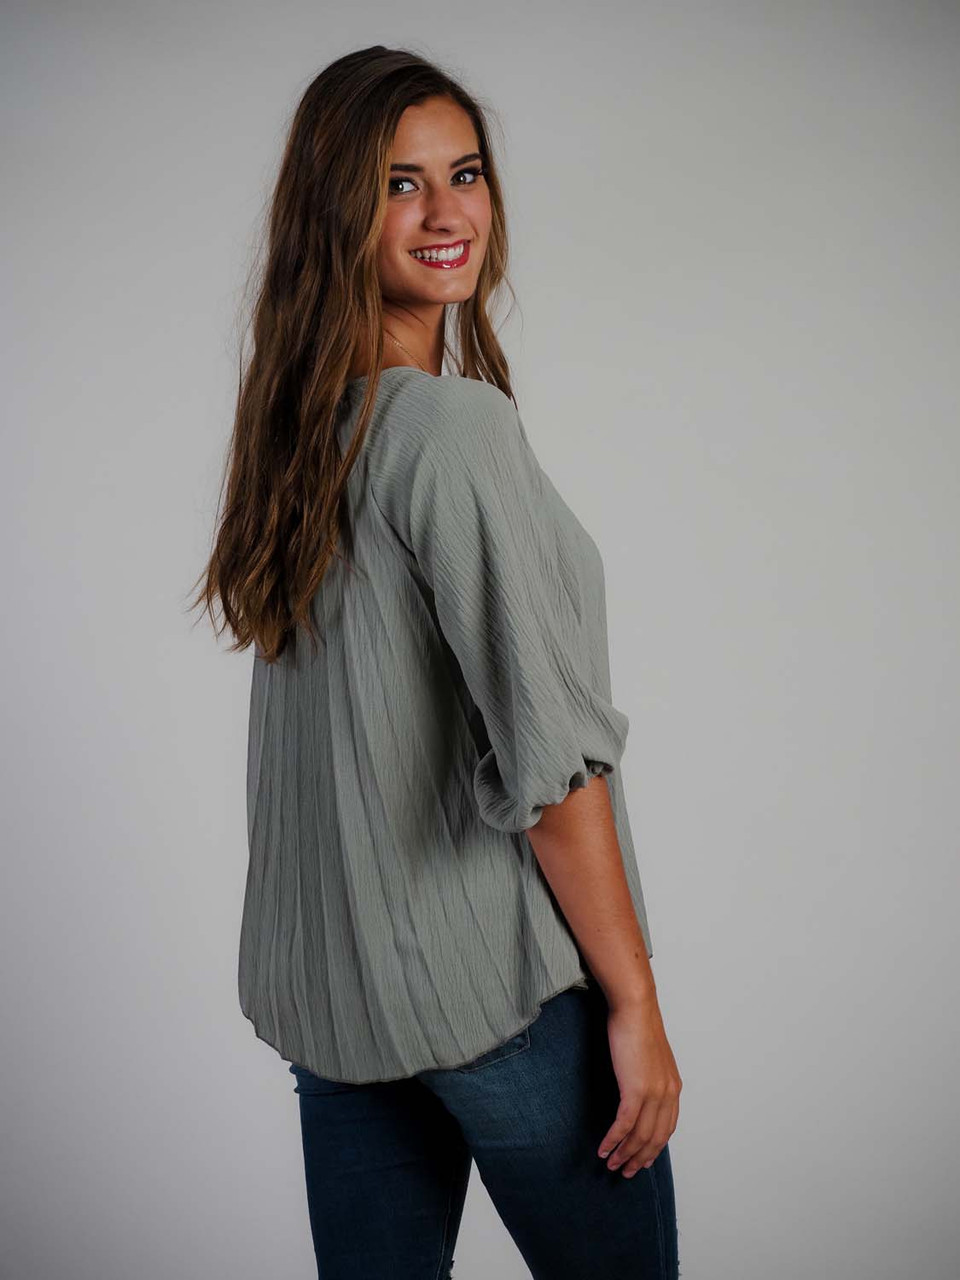 sage green pleated top 3/4 length sleeve